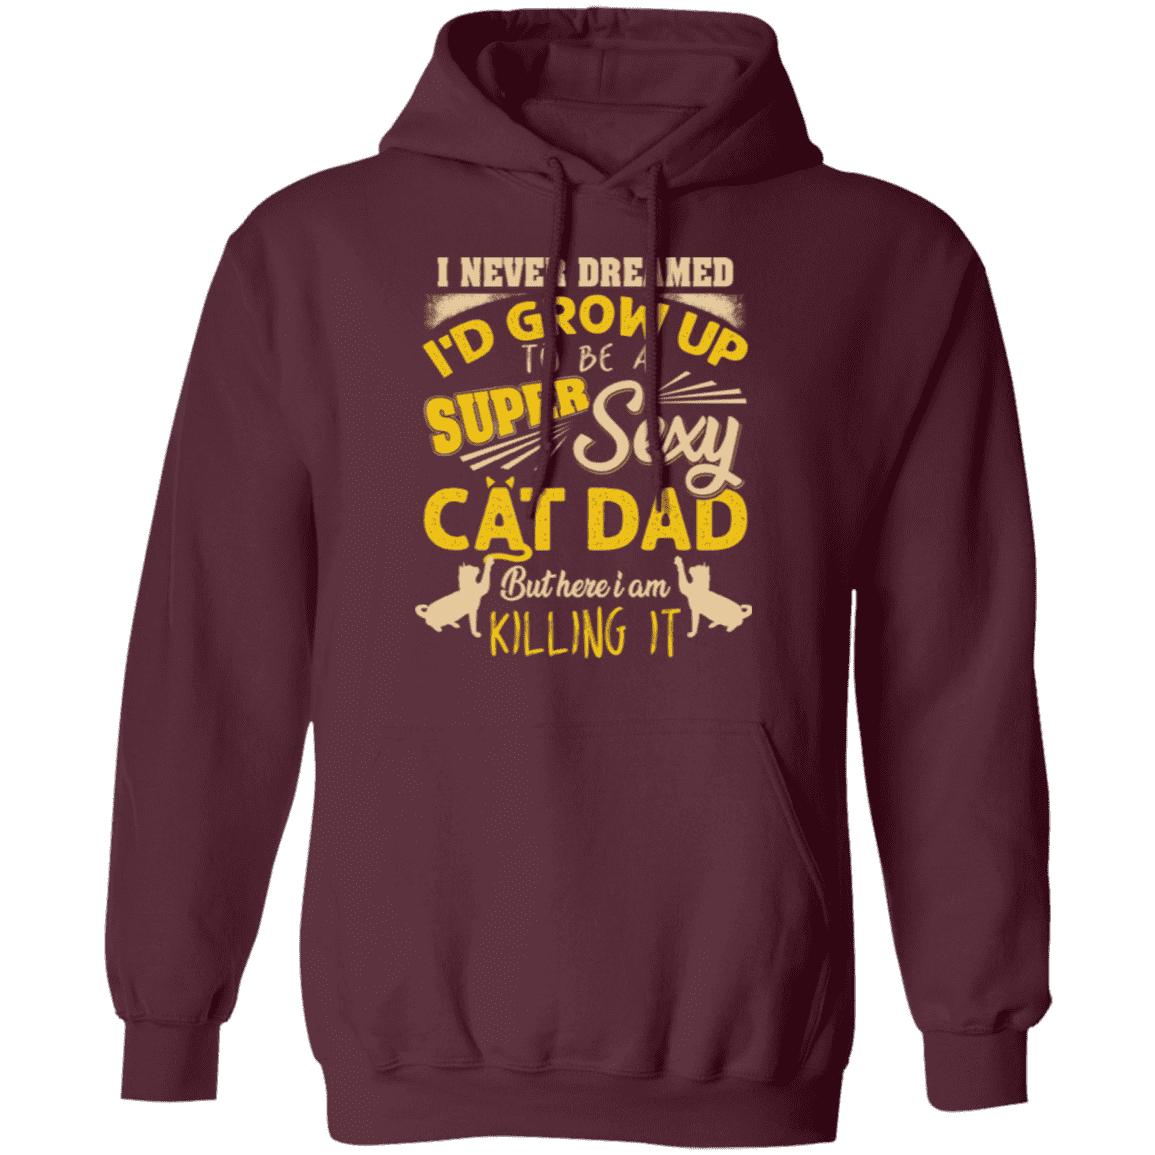 SEXY CAT DAD Pullover Hoodie 8 oz.